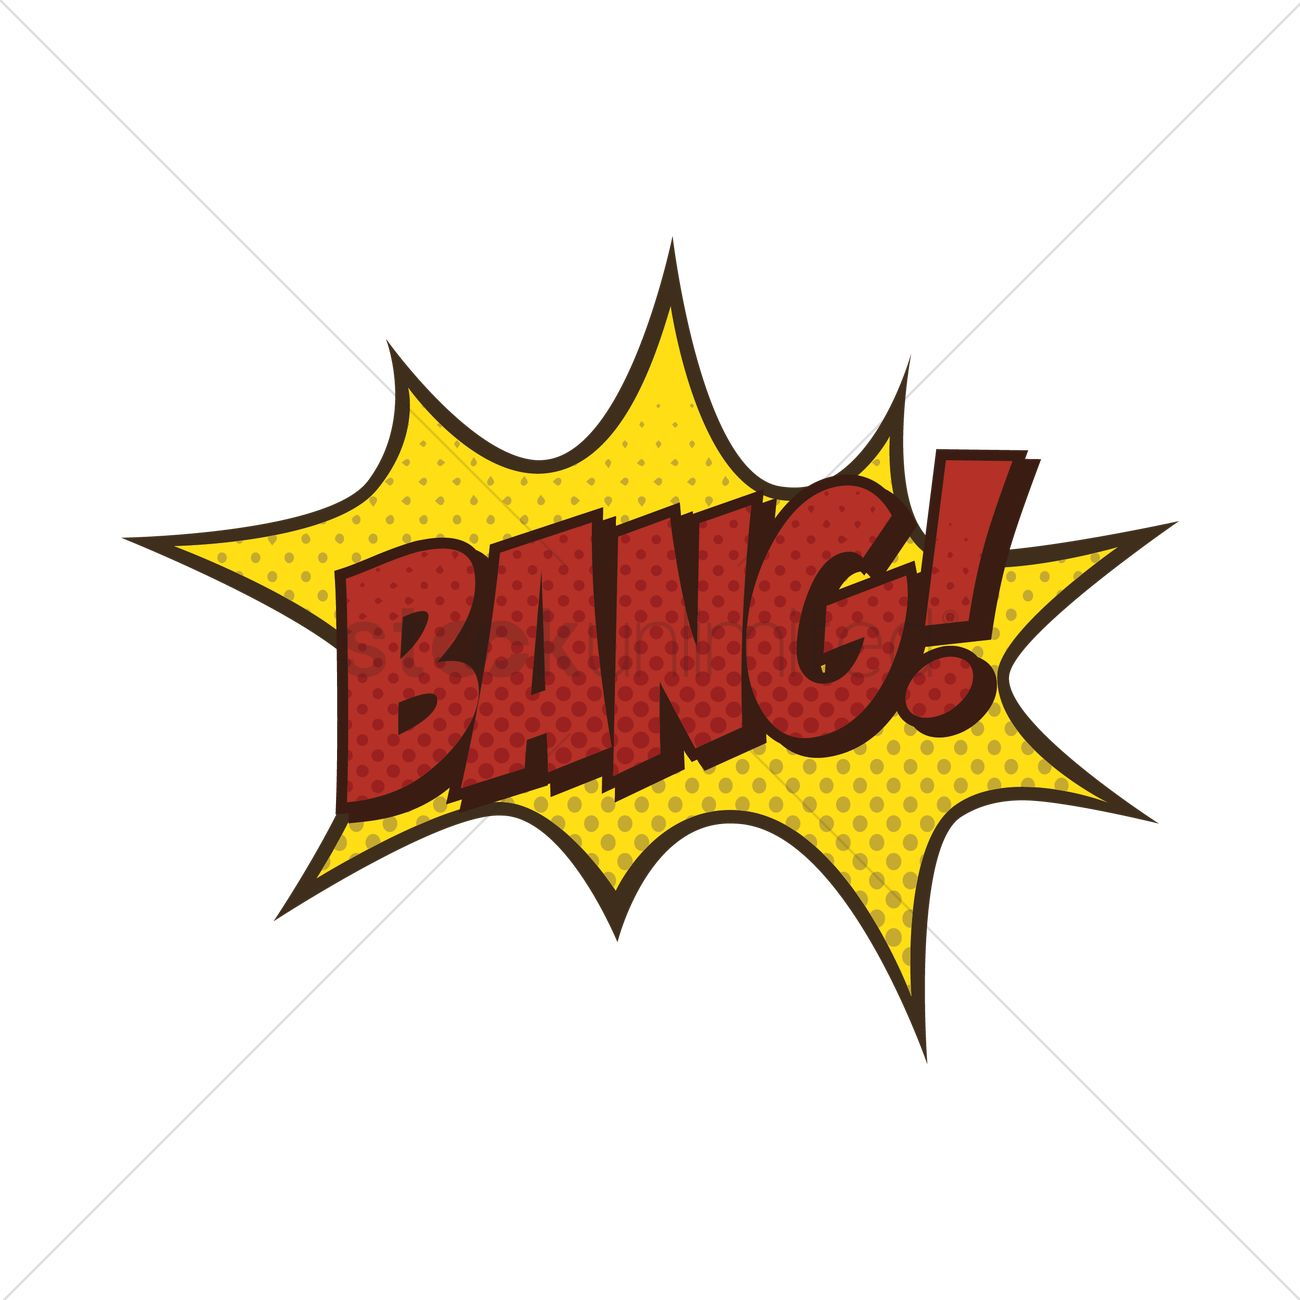 bang text with comic effect vector image 1822951 free vector eps free vector eps gratuit